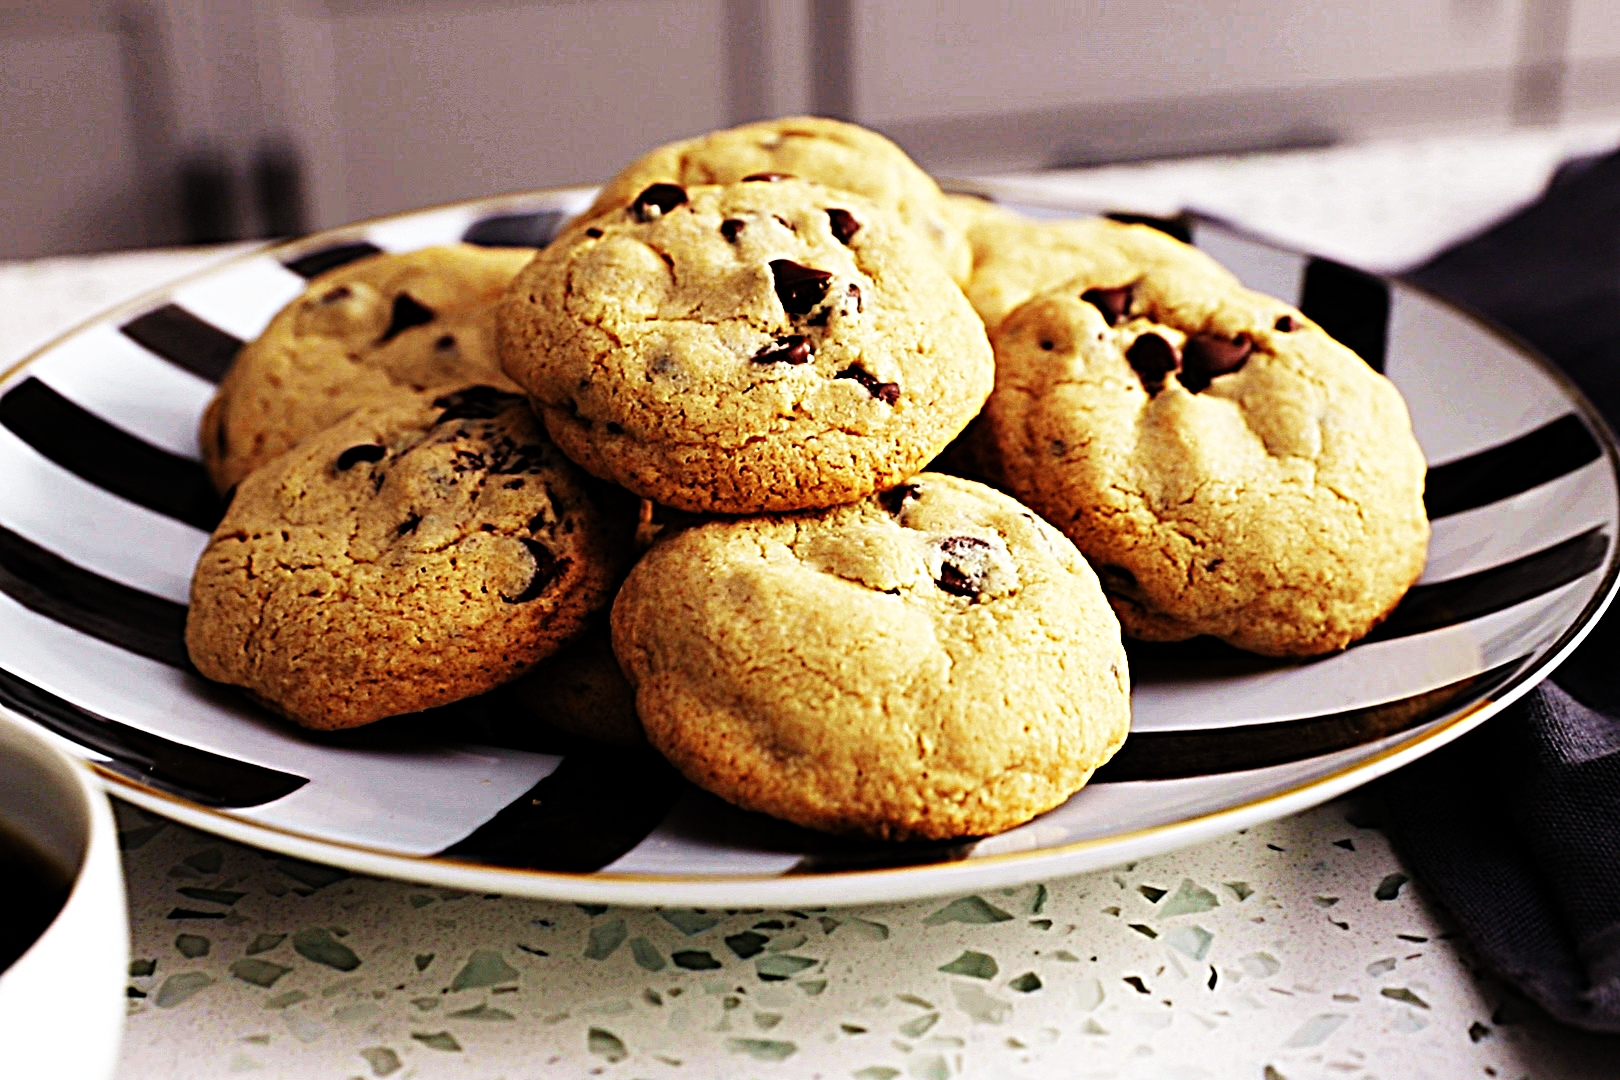 Stupid-Easy Recipe for Gluten-Free Chocolate Chip Cookies (#1 Top-Rated)